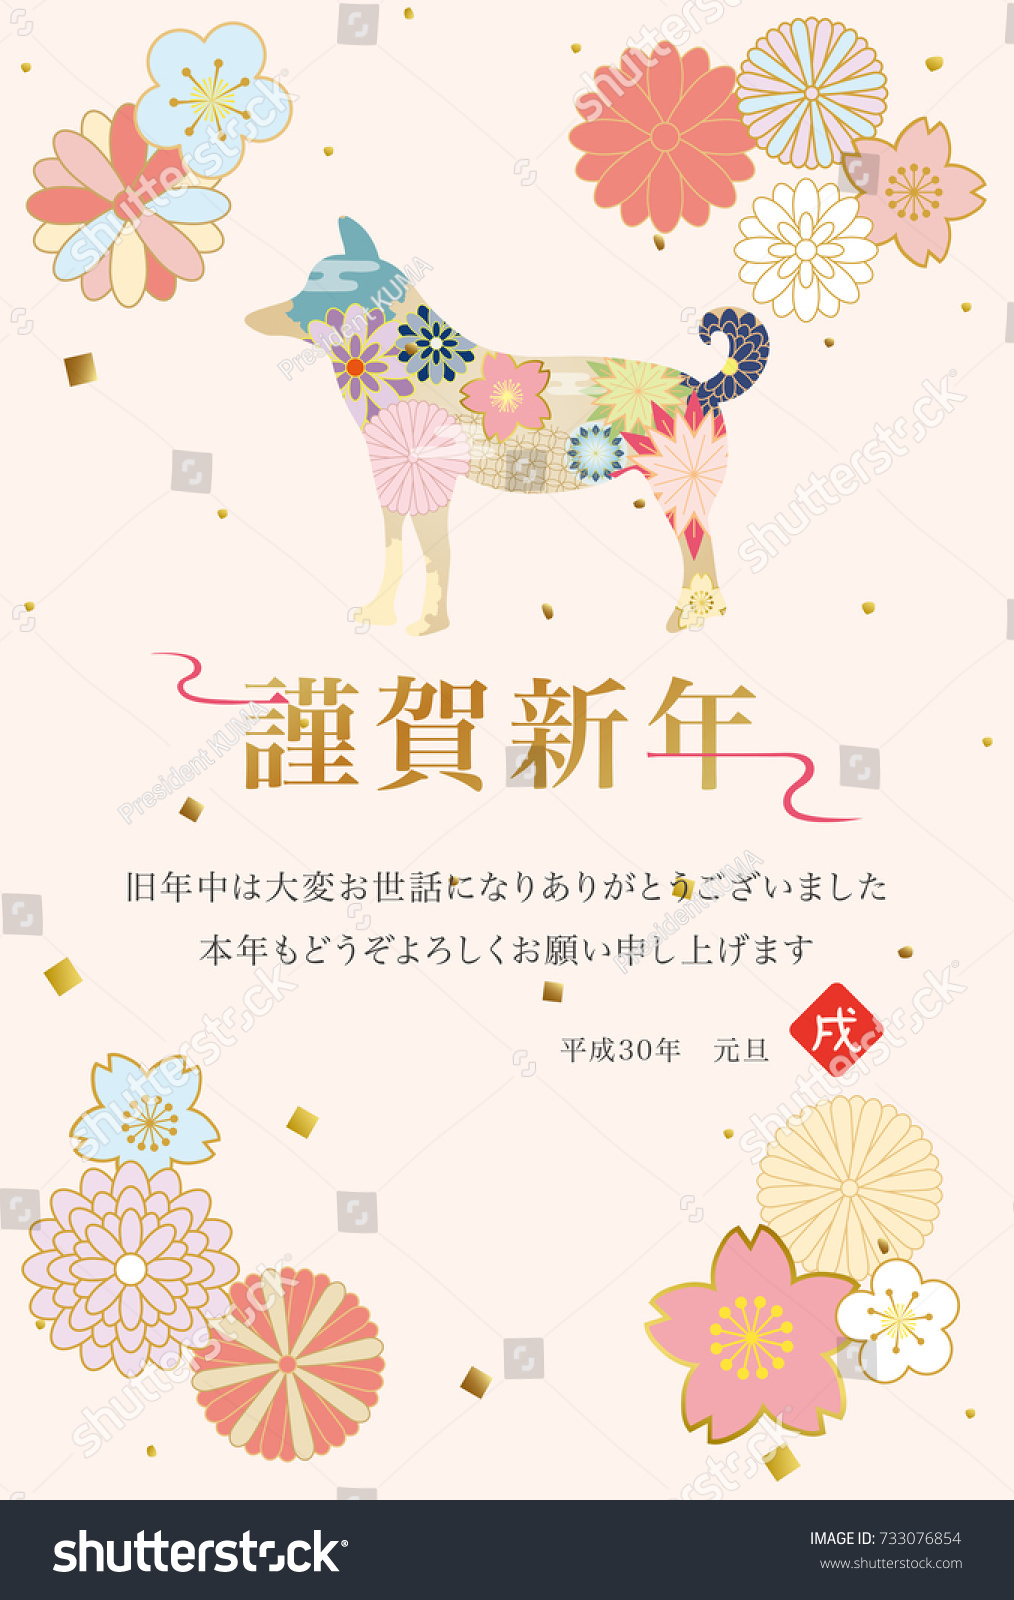 japanese new years card in 2018 in japanese it is written happy new